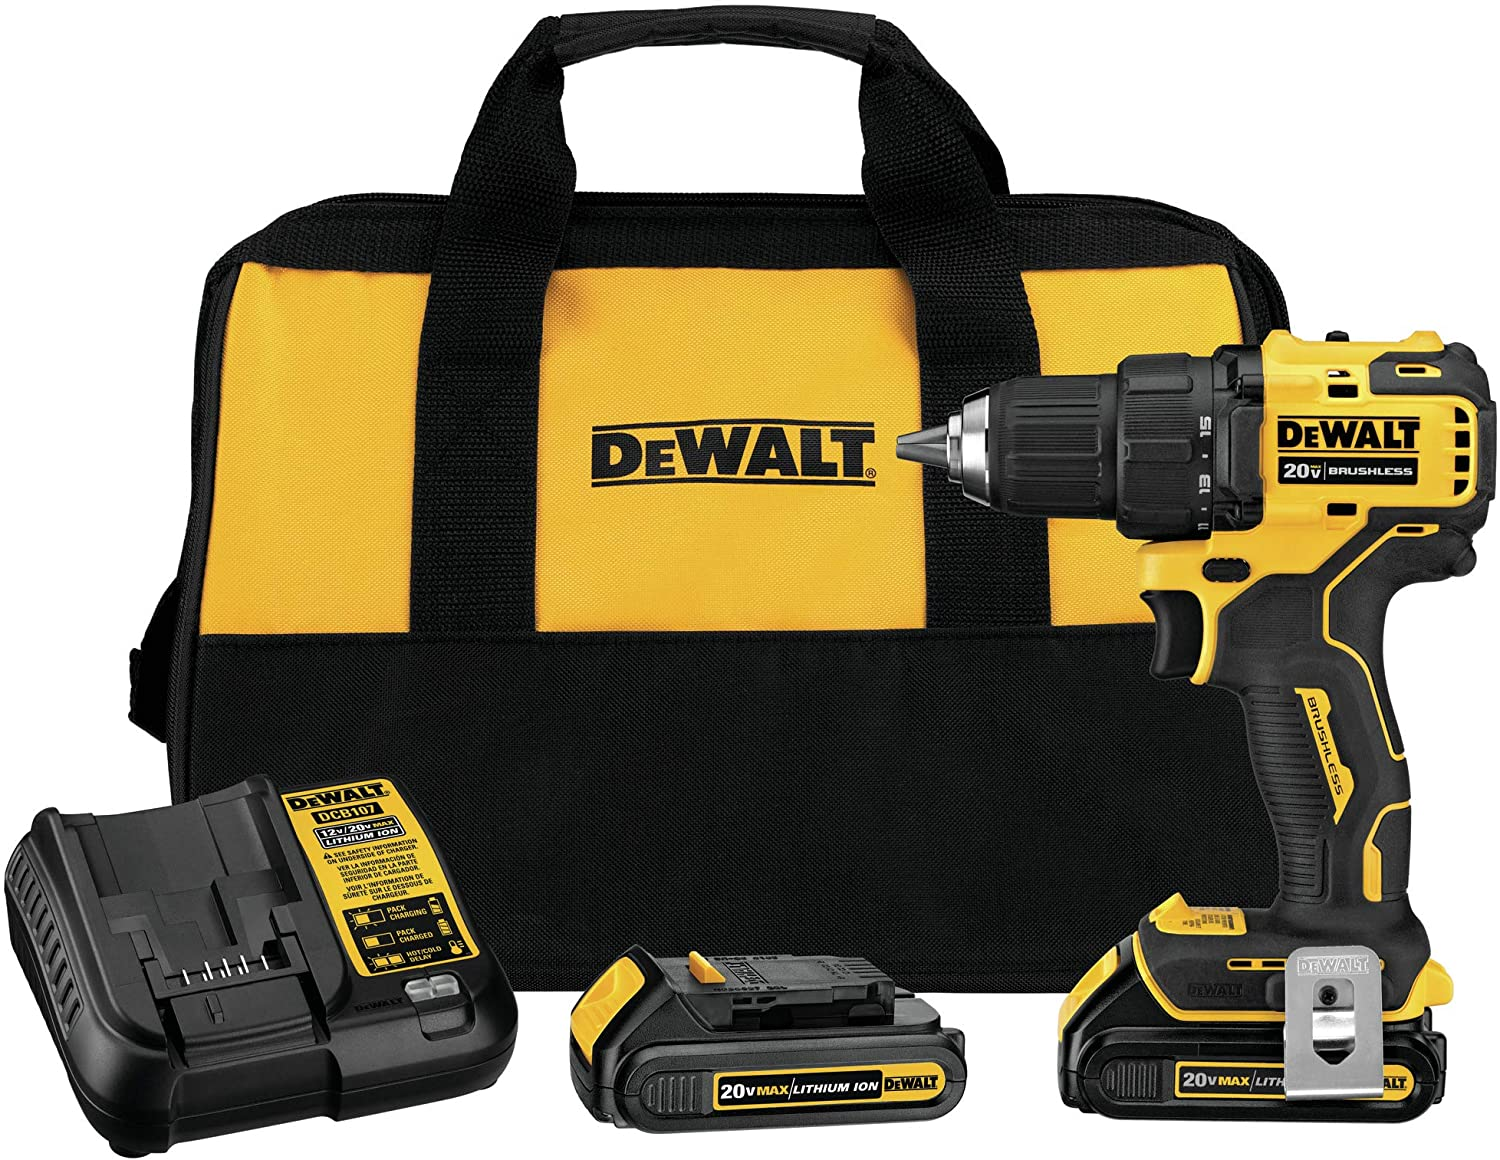 Nikro 860769 Dewalt 20V Cordless Drill 2 Batteries Carrying Case Set